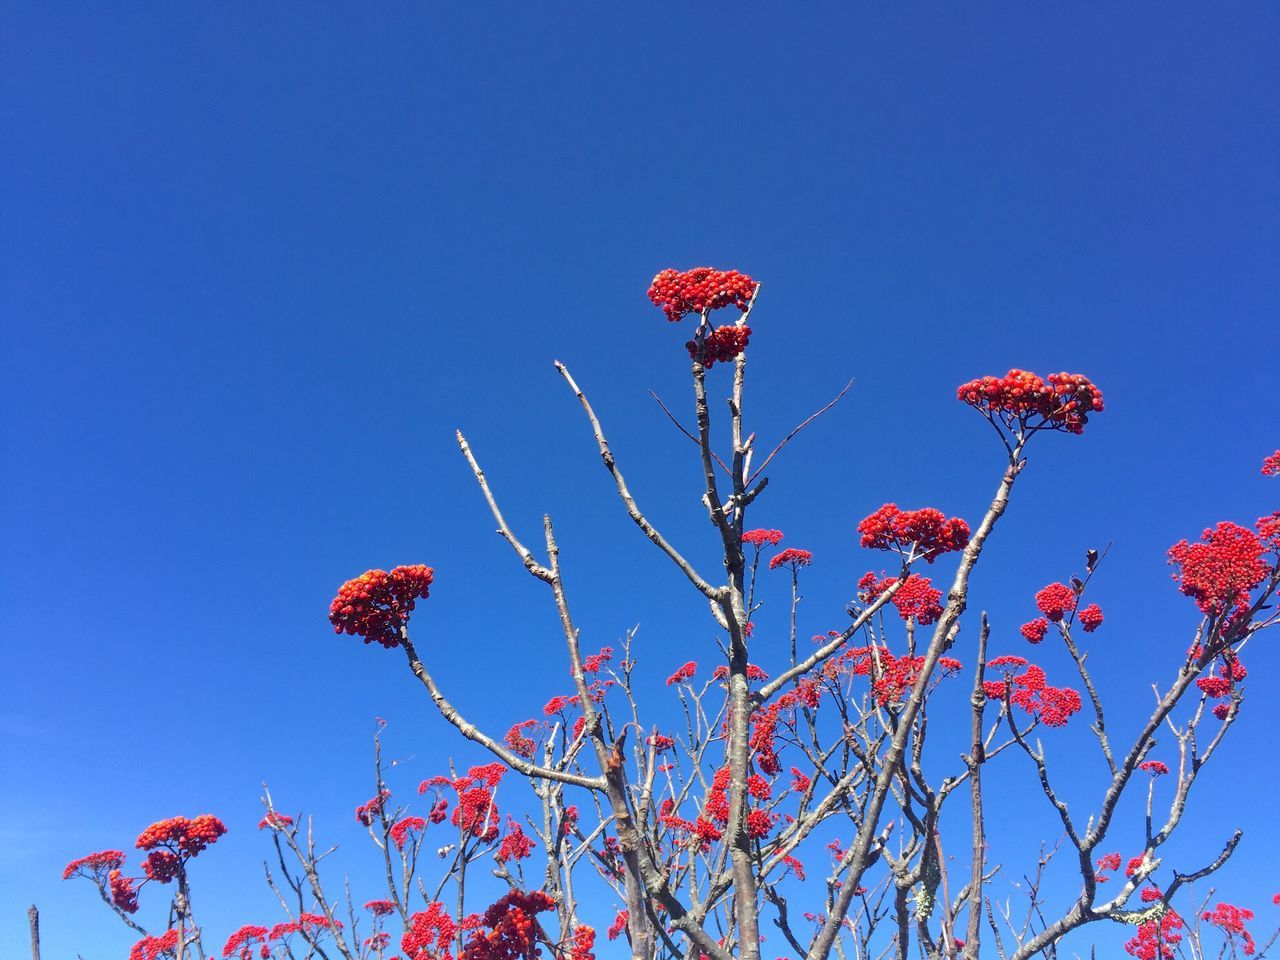 Blue Low Angle View Clear Sky Nature Red No People Beauty In Nature Outdoors Branch Mountain Ash Red Berries Autumn Fall Simplicity High Contrast Red And Blue